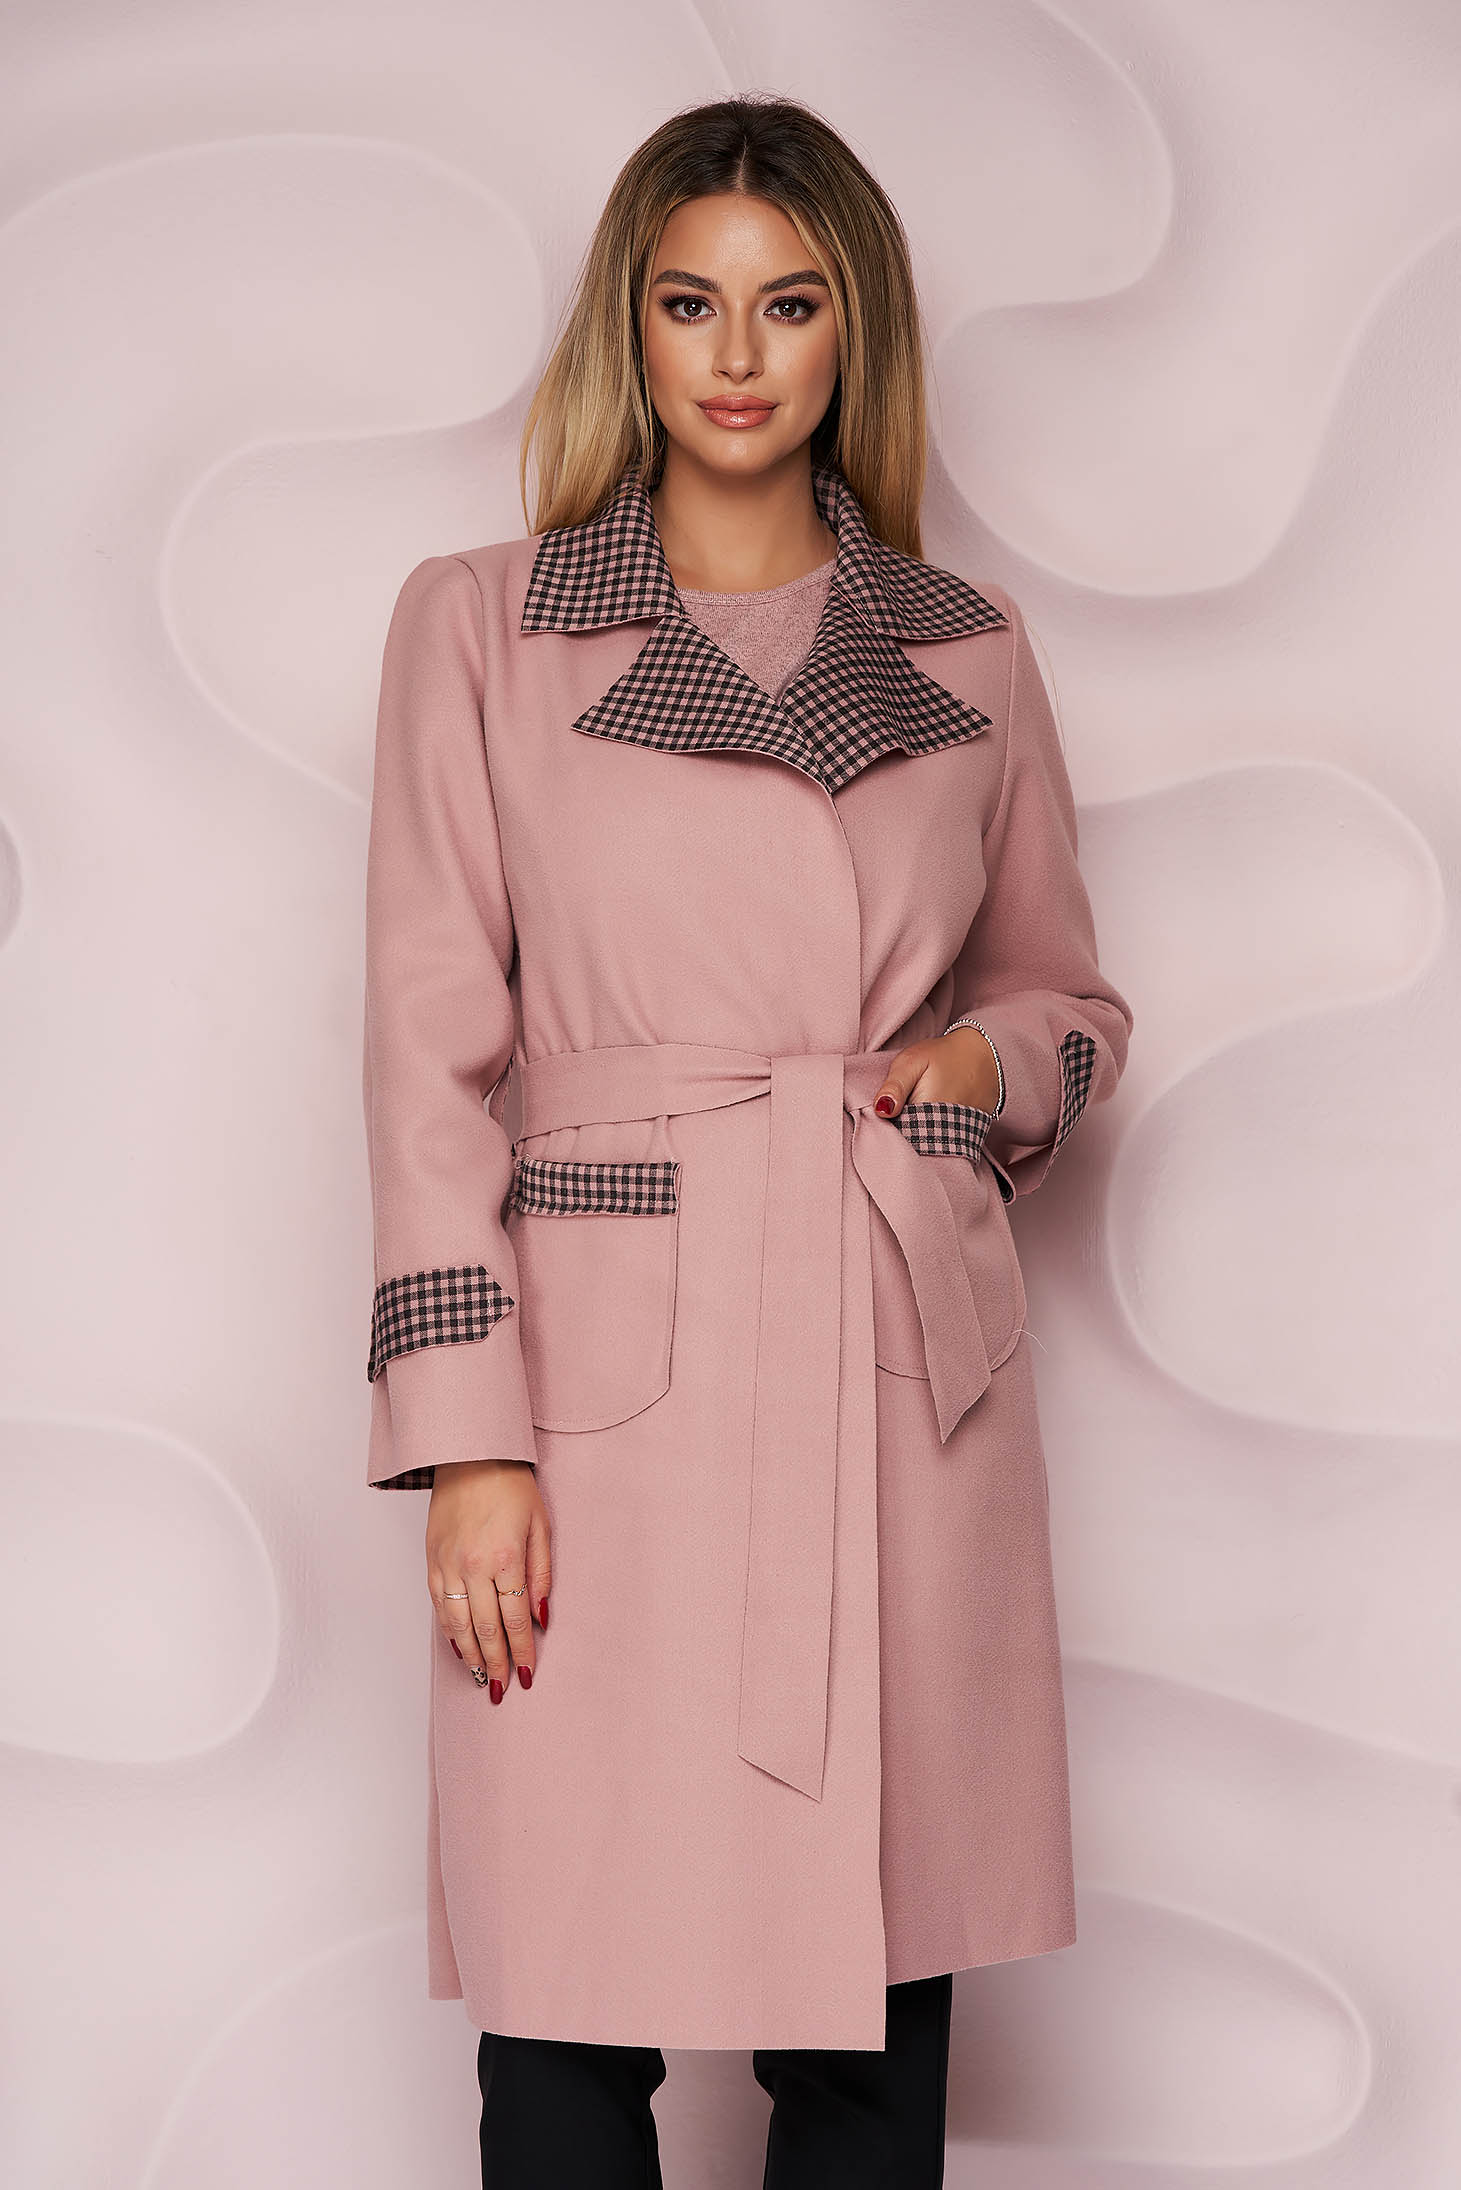 Lightpink trenchcoat long straight thick fabric slightly elastic fabric detachable cord with chequers